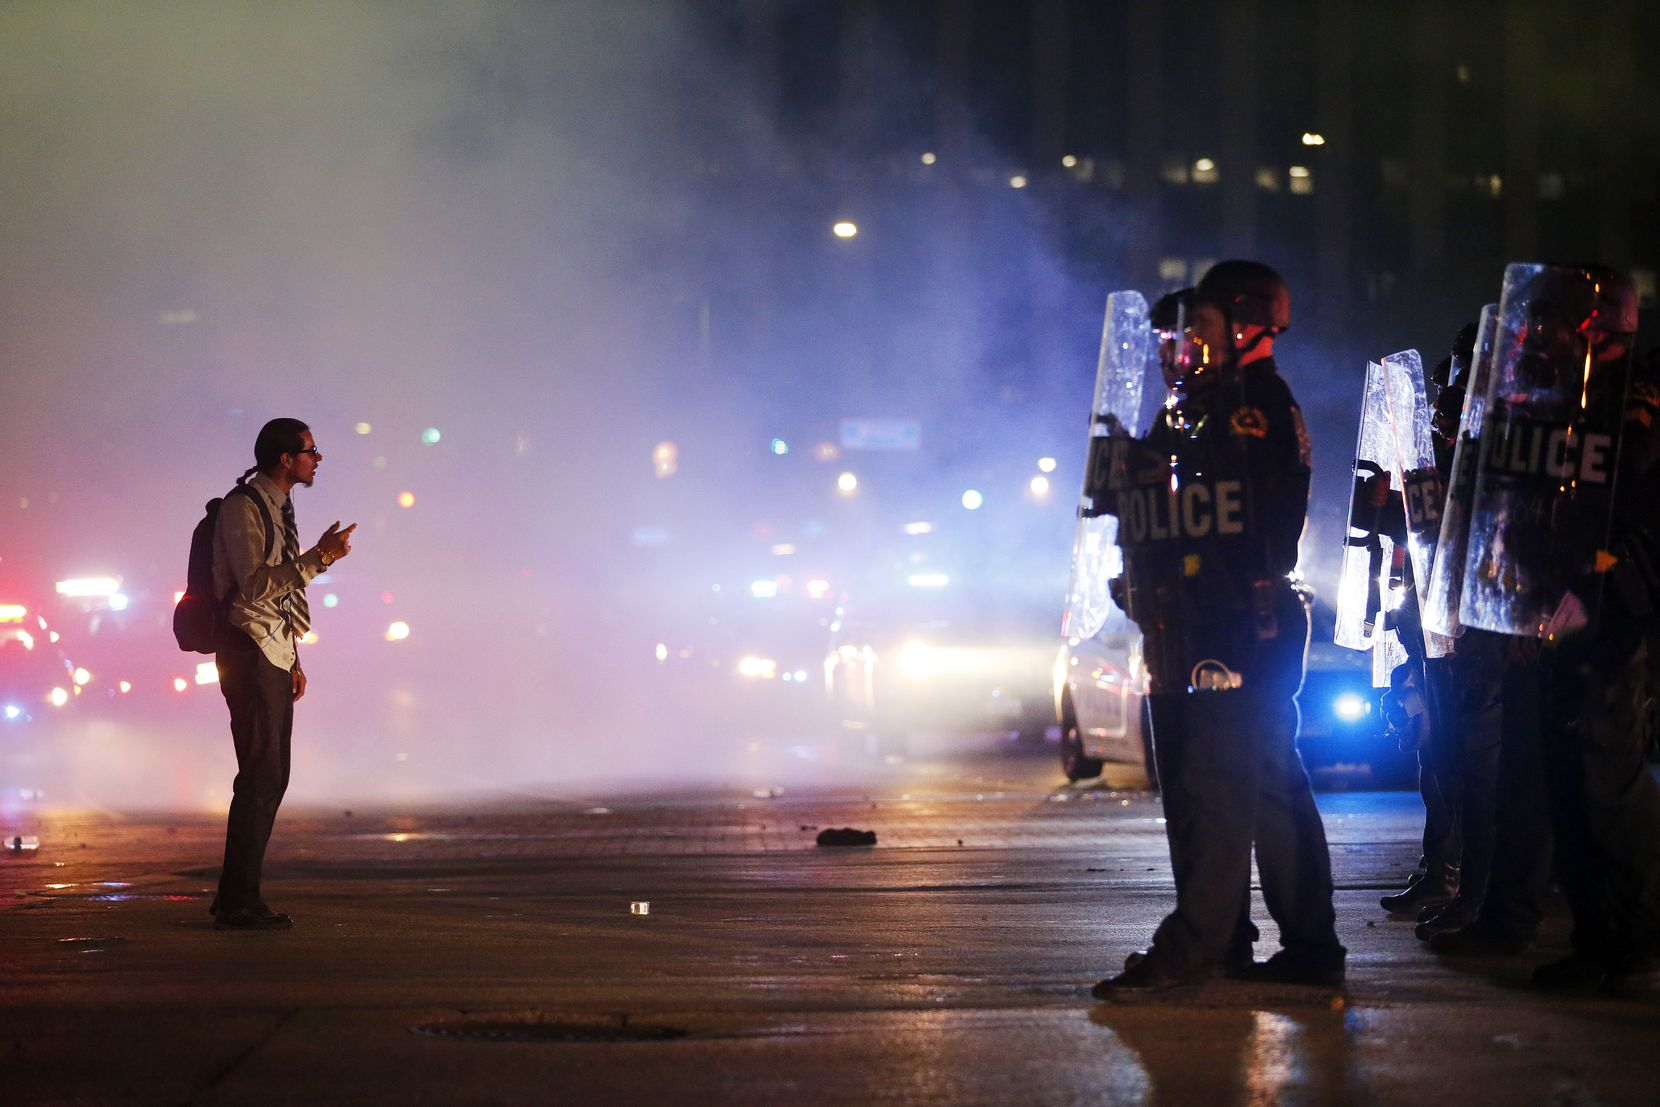 A protestor stands in the middle of the tear gas confronting tactical officers at the intersection of Young St. and S. Griffin St. in downtown Dallas, Friday, May 29, 2020. People were marching in protest of the in-custody death of George Floyd when they confronted Dallas Police tactical officers.